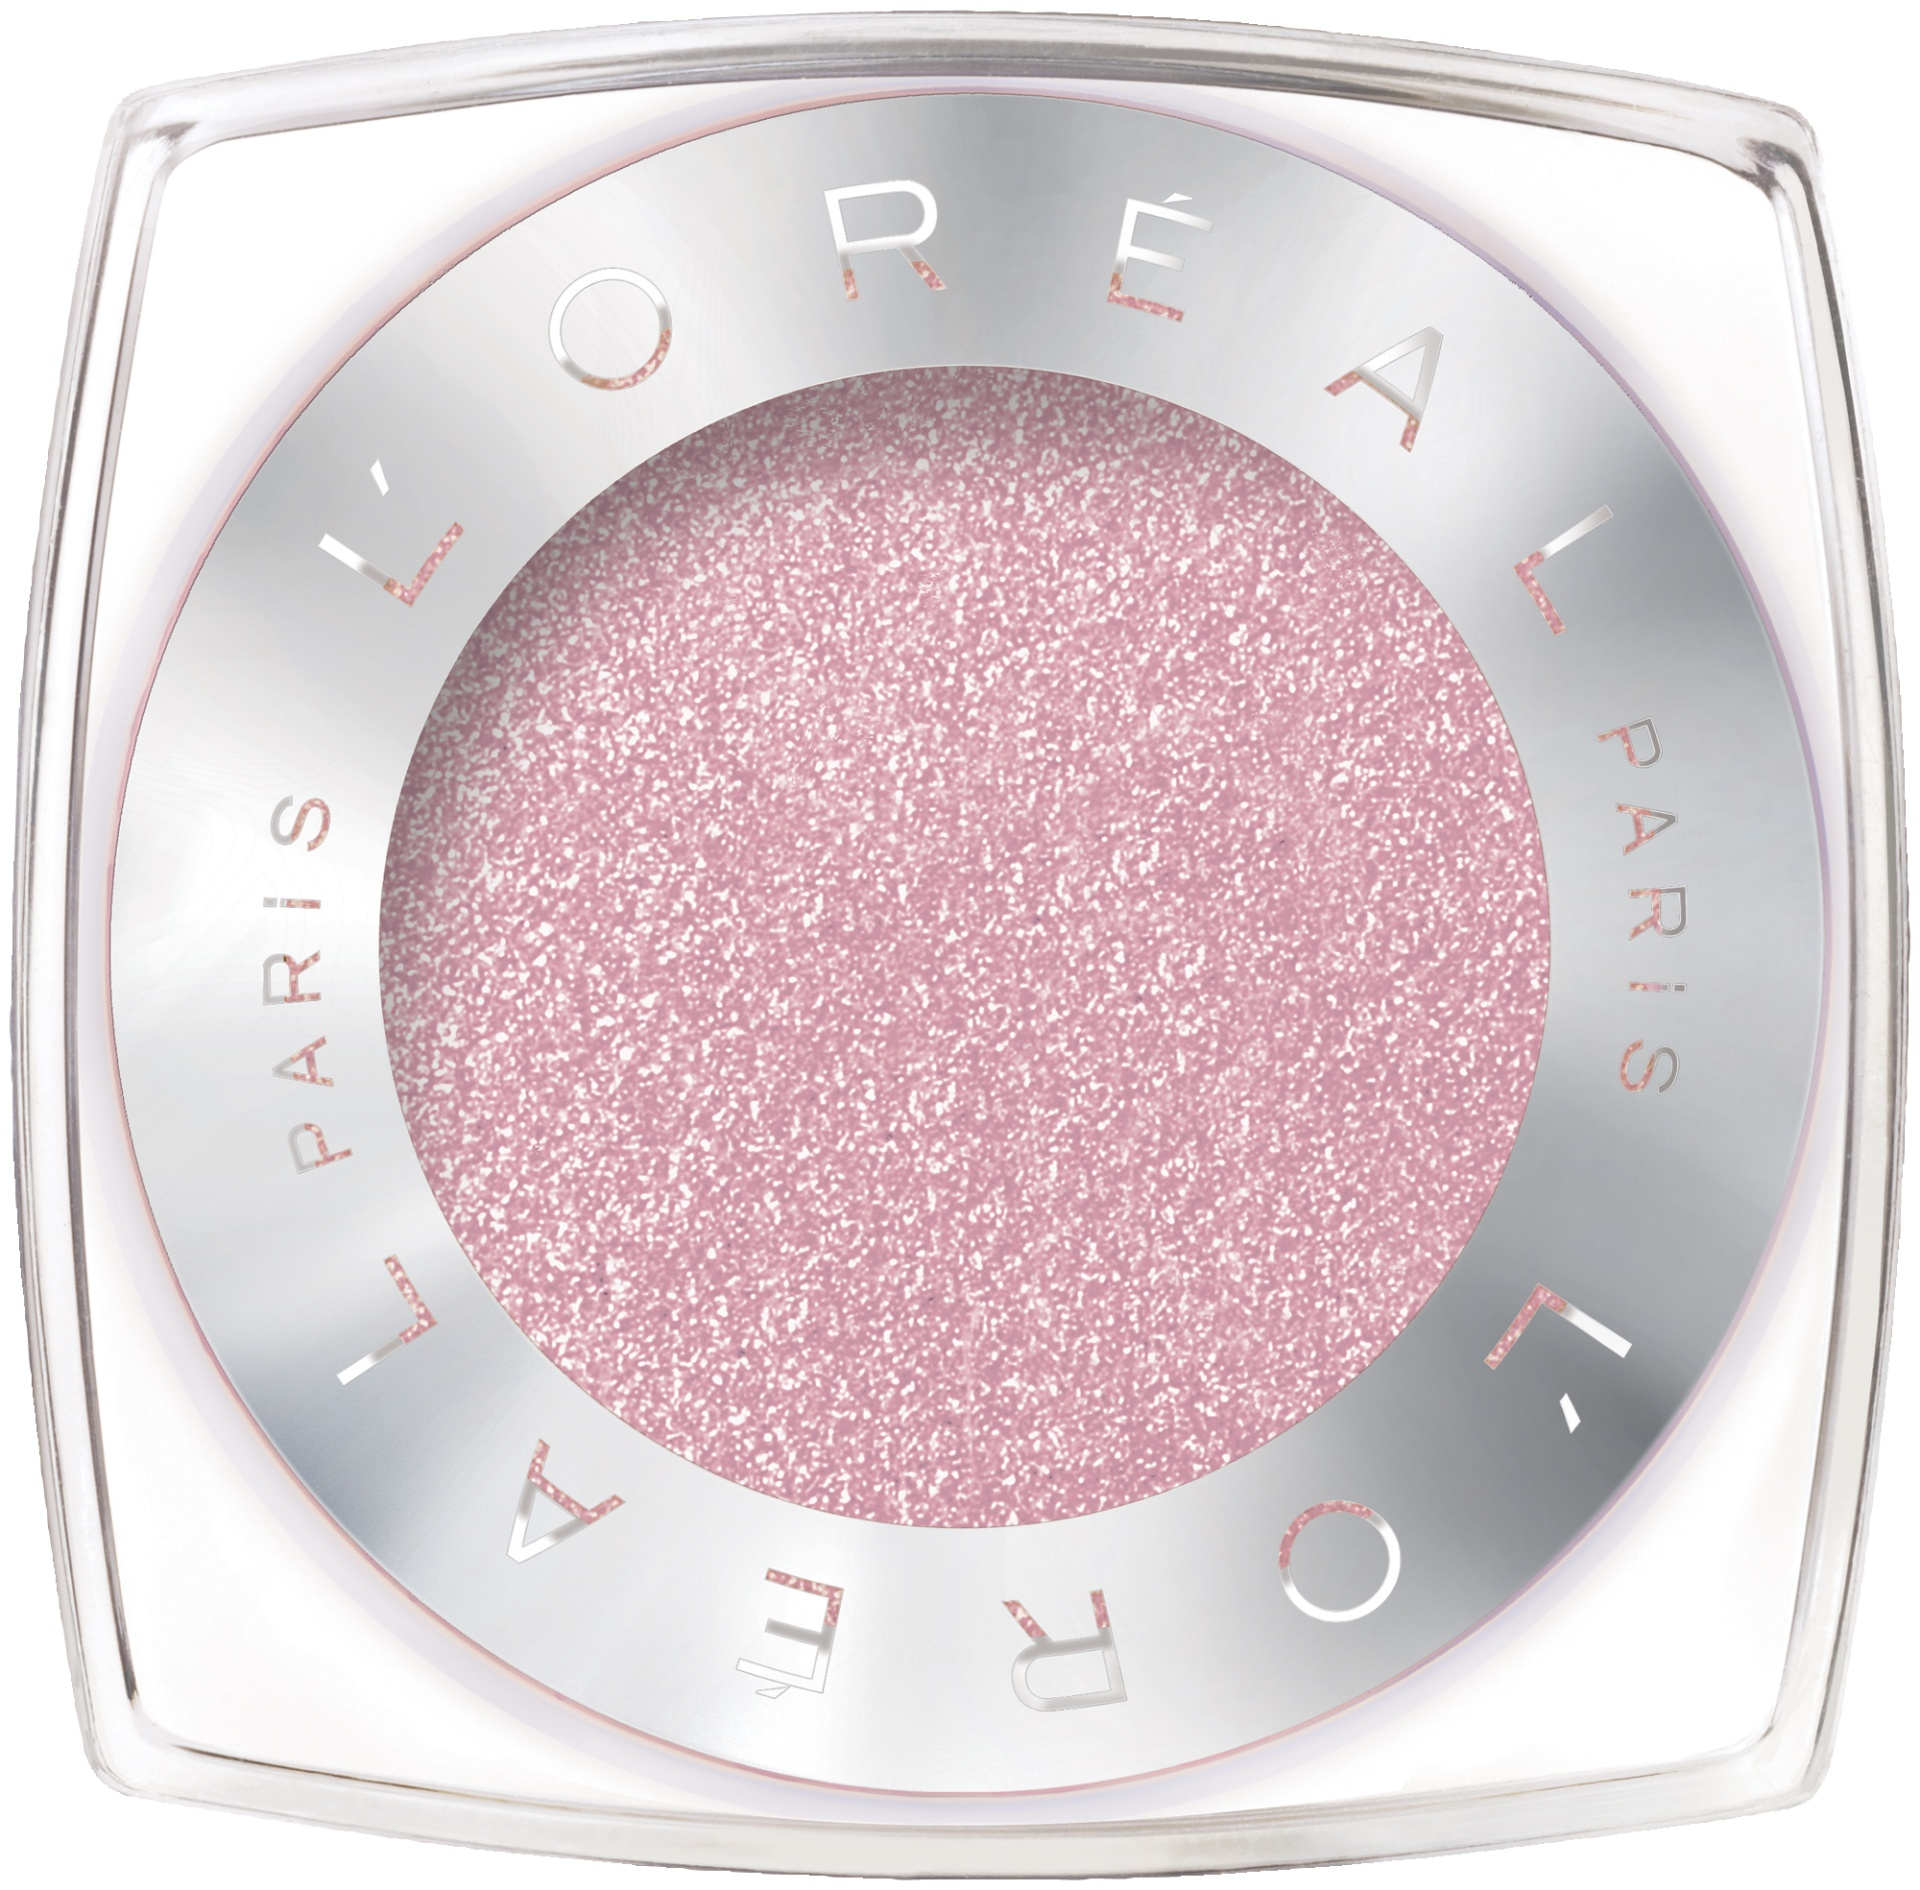 slide 2 of 2, L'Oréal Infallible Shadow 756 Always Pearly Pink,